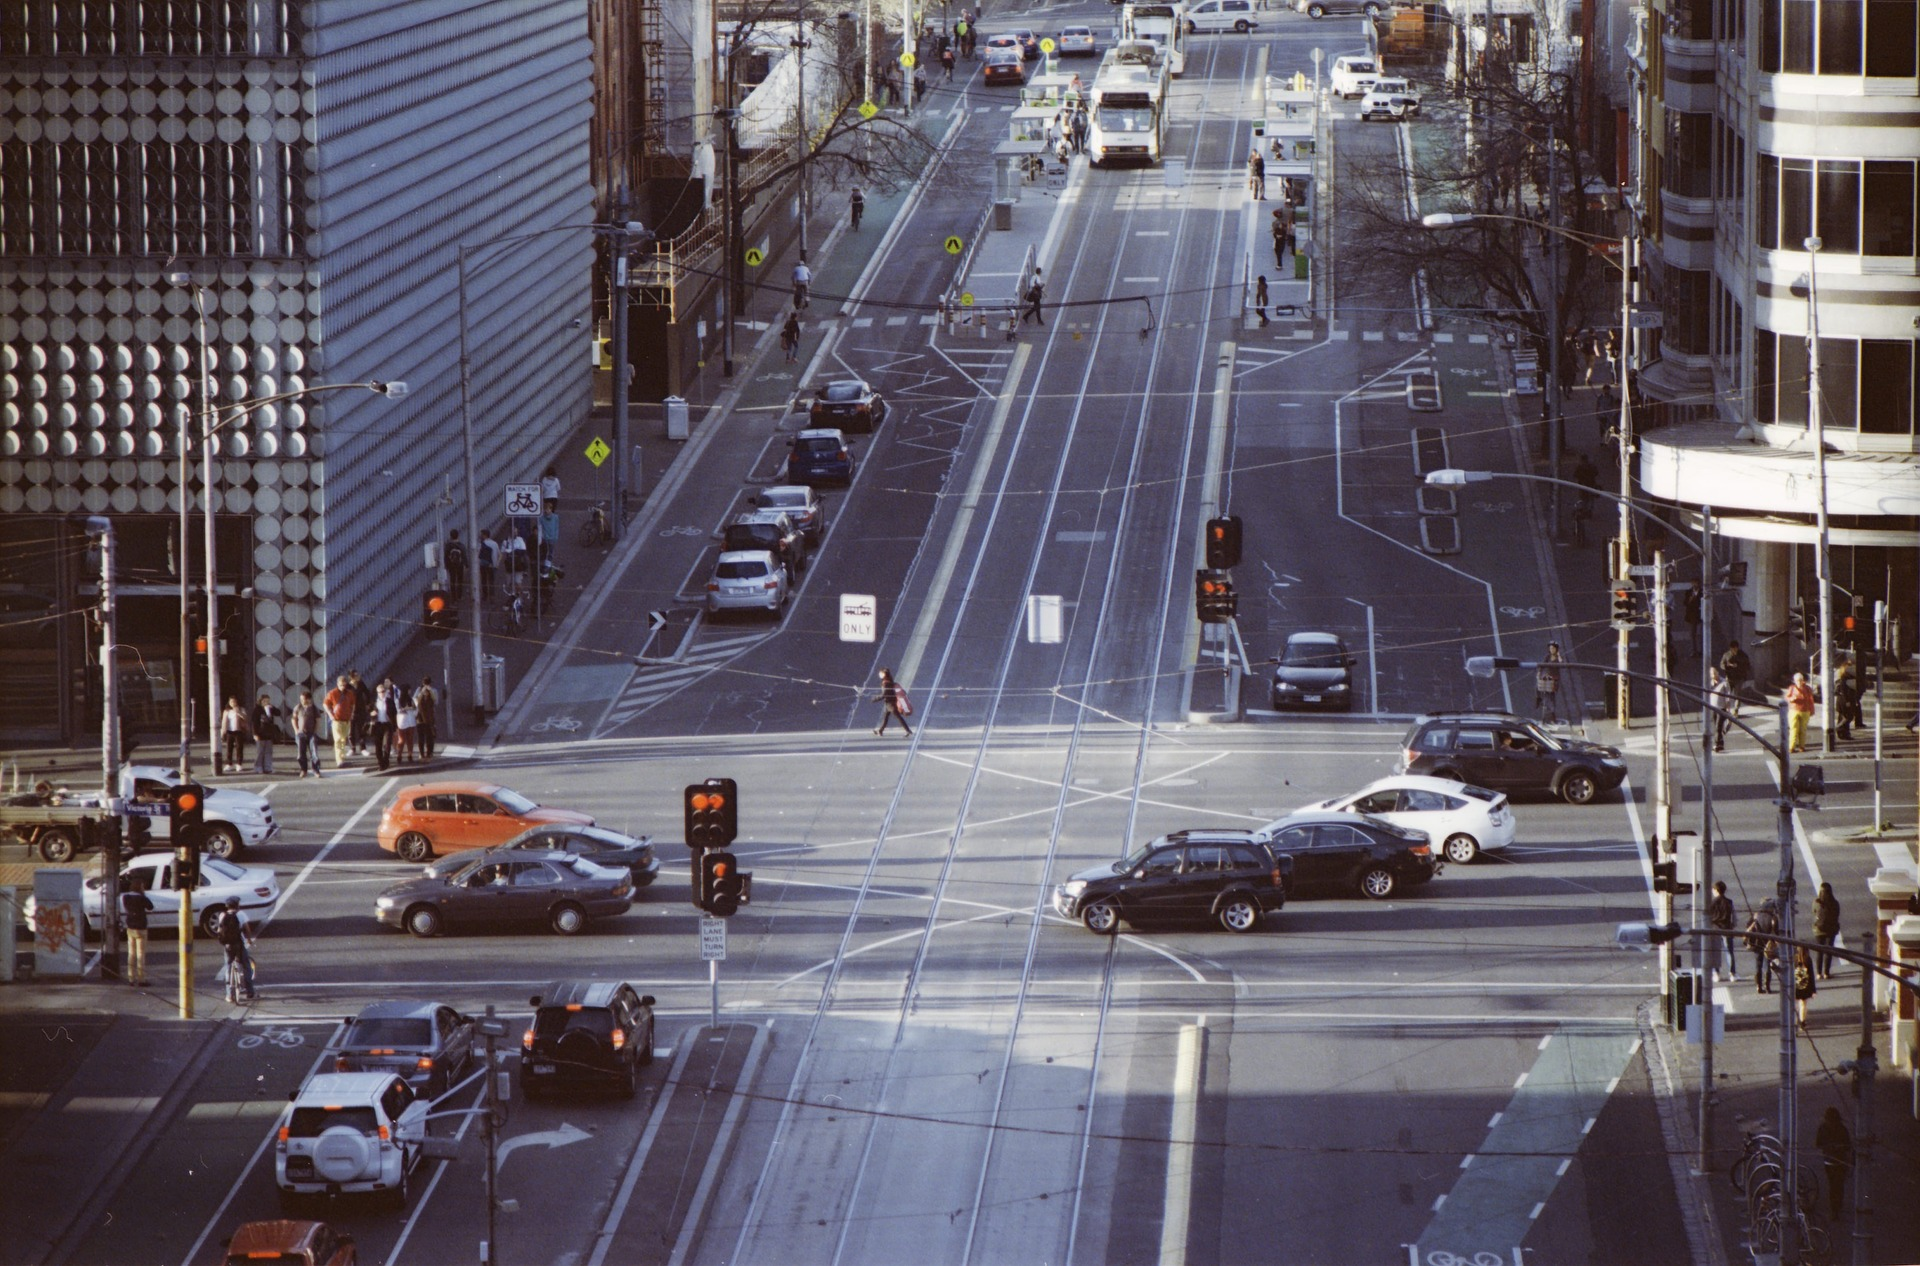 intersection-2262239_1920